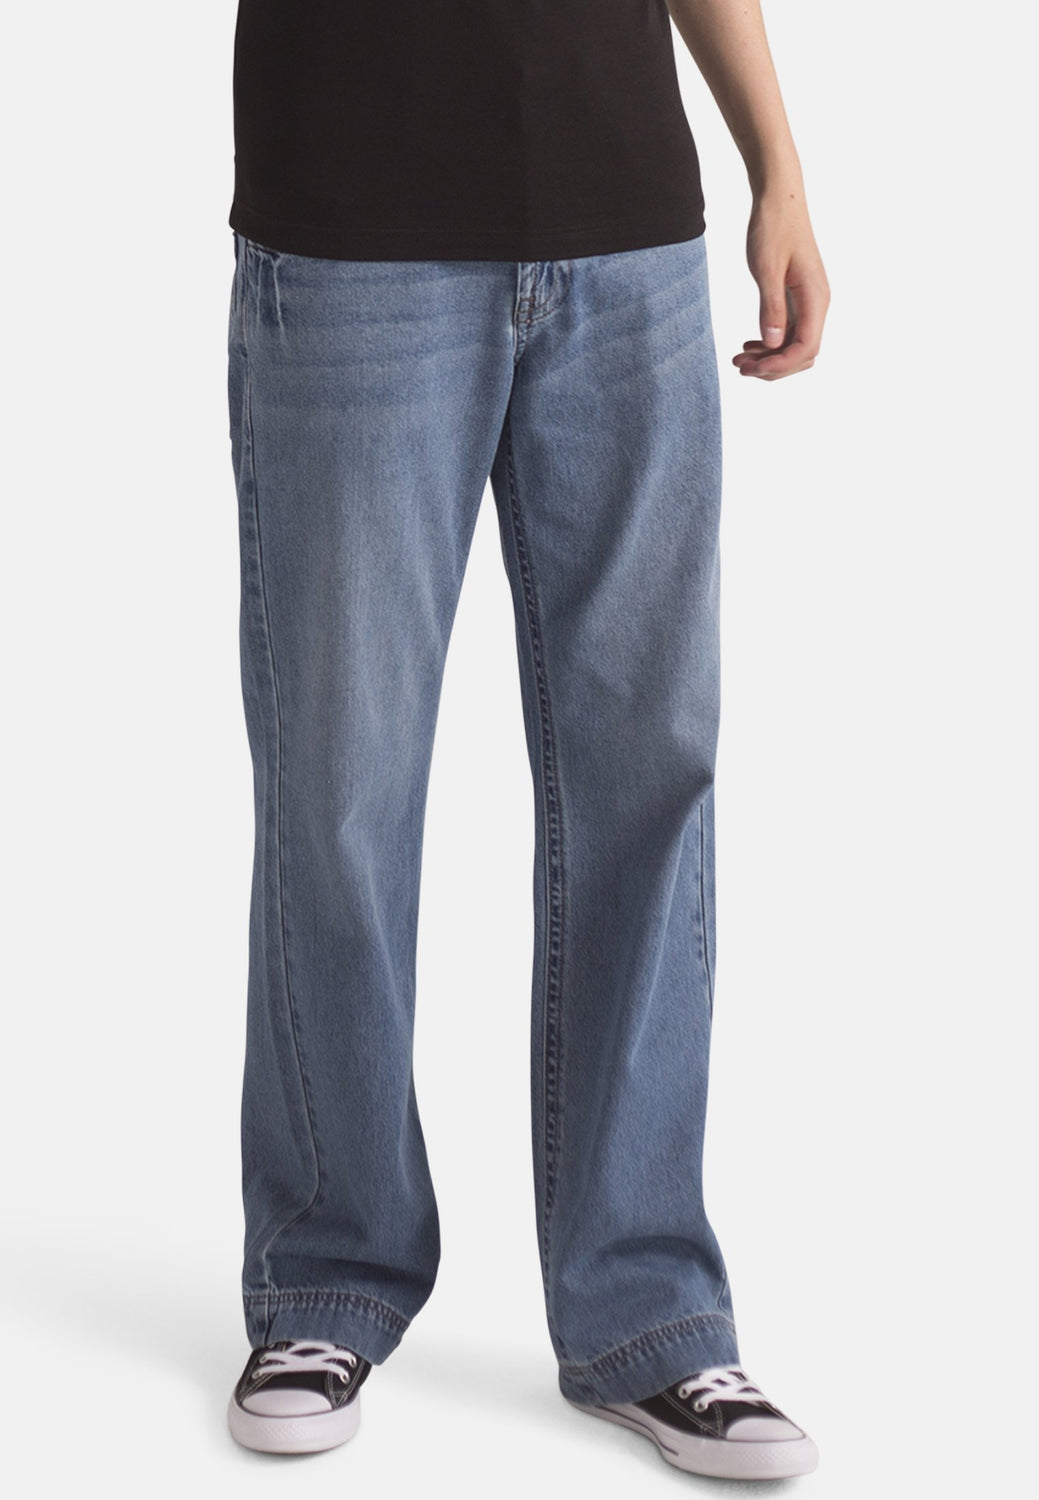 Organic Loose Fit Slouch Jeans in Light Wash - Monkee Genes Organic Jeans Denim - Men's Wide Jeans Monkee Genes Official  Monkee Genes Official